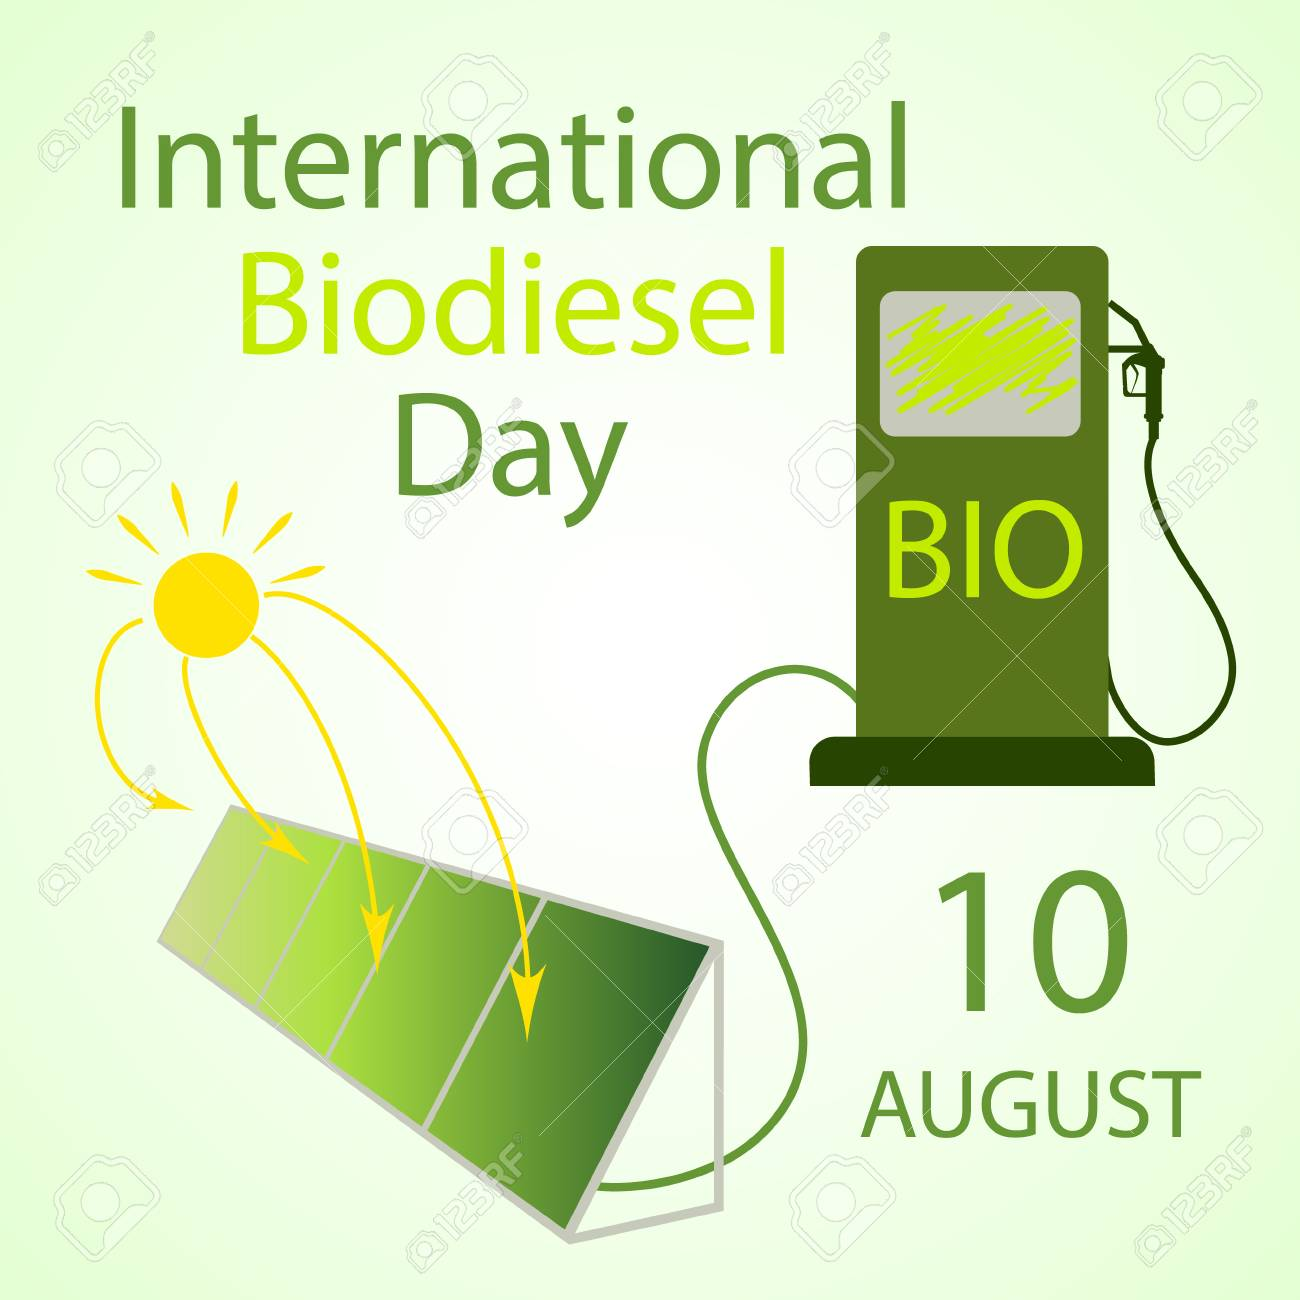 International Biodiesel Day - August  10